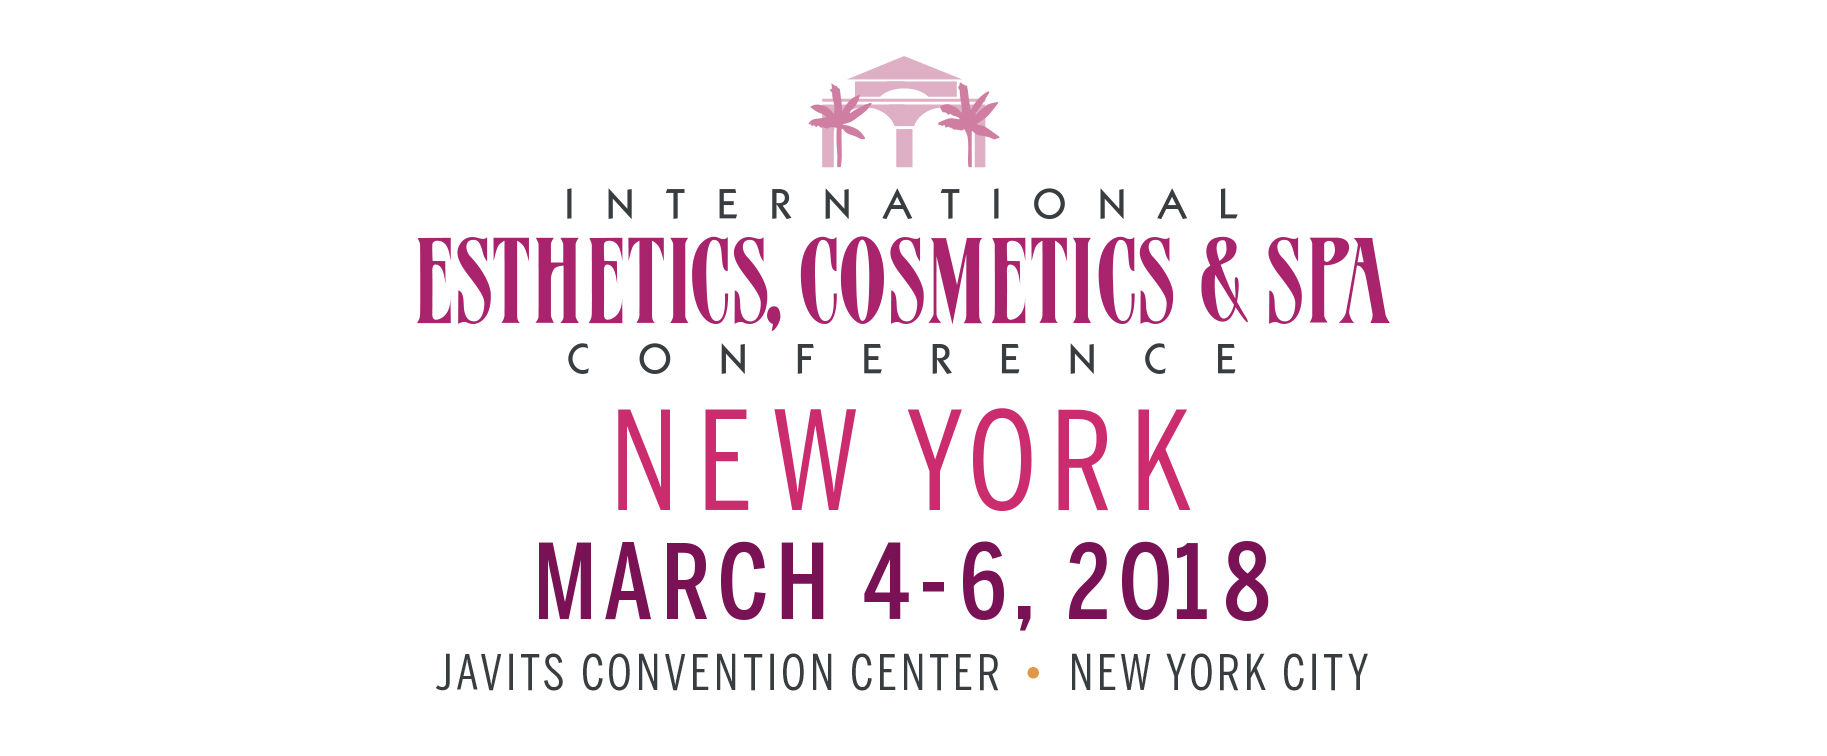 International Esthetics, Cosmetics & Spa Conference New York 2018